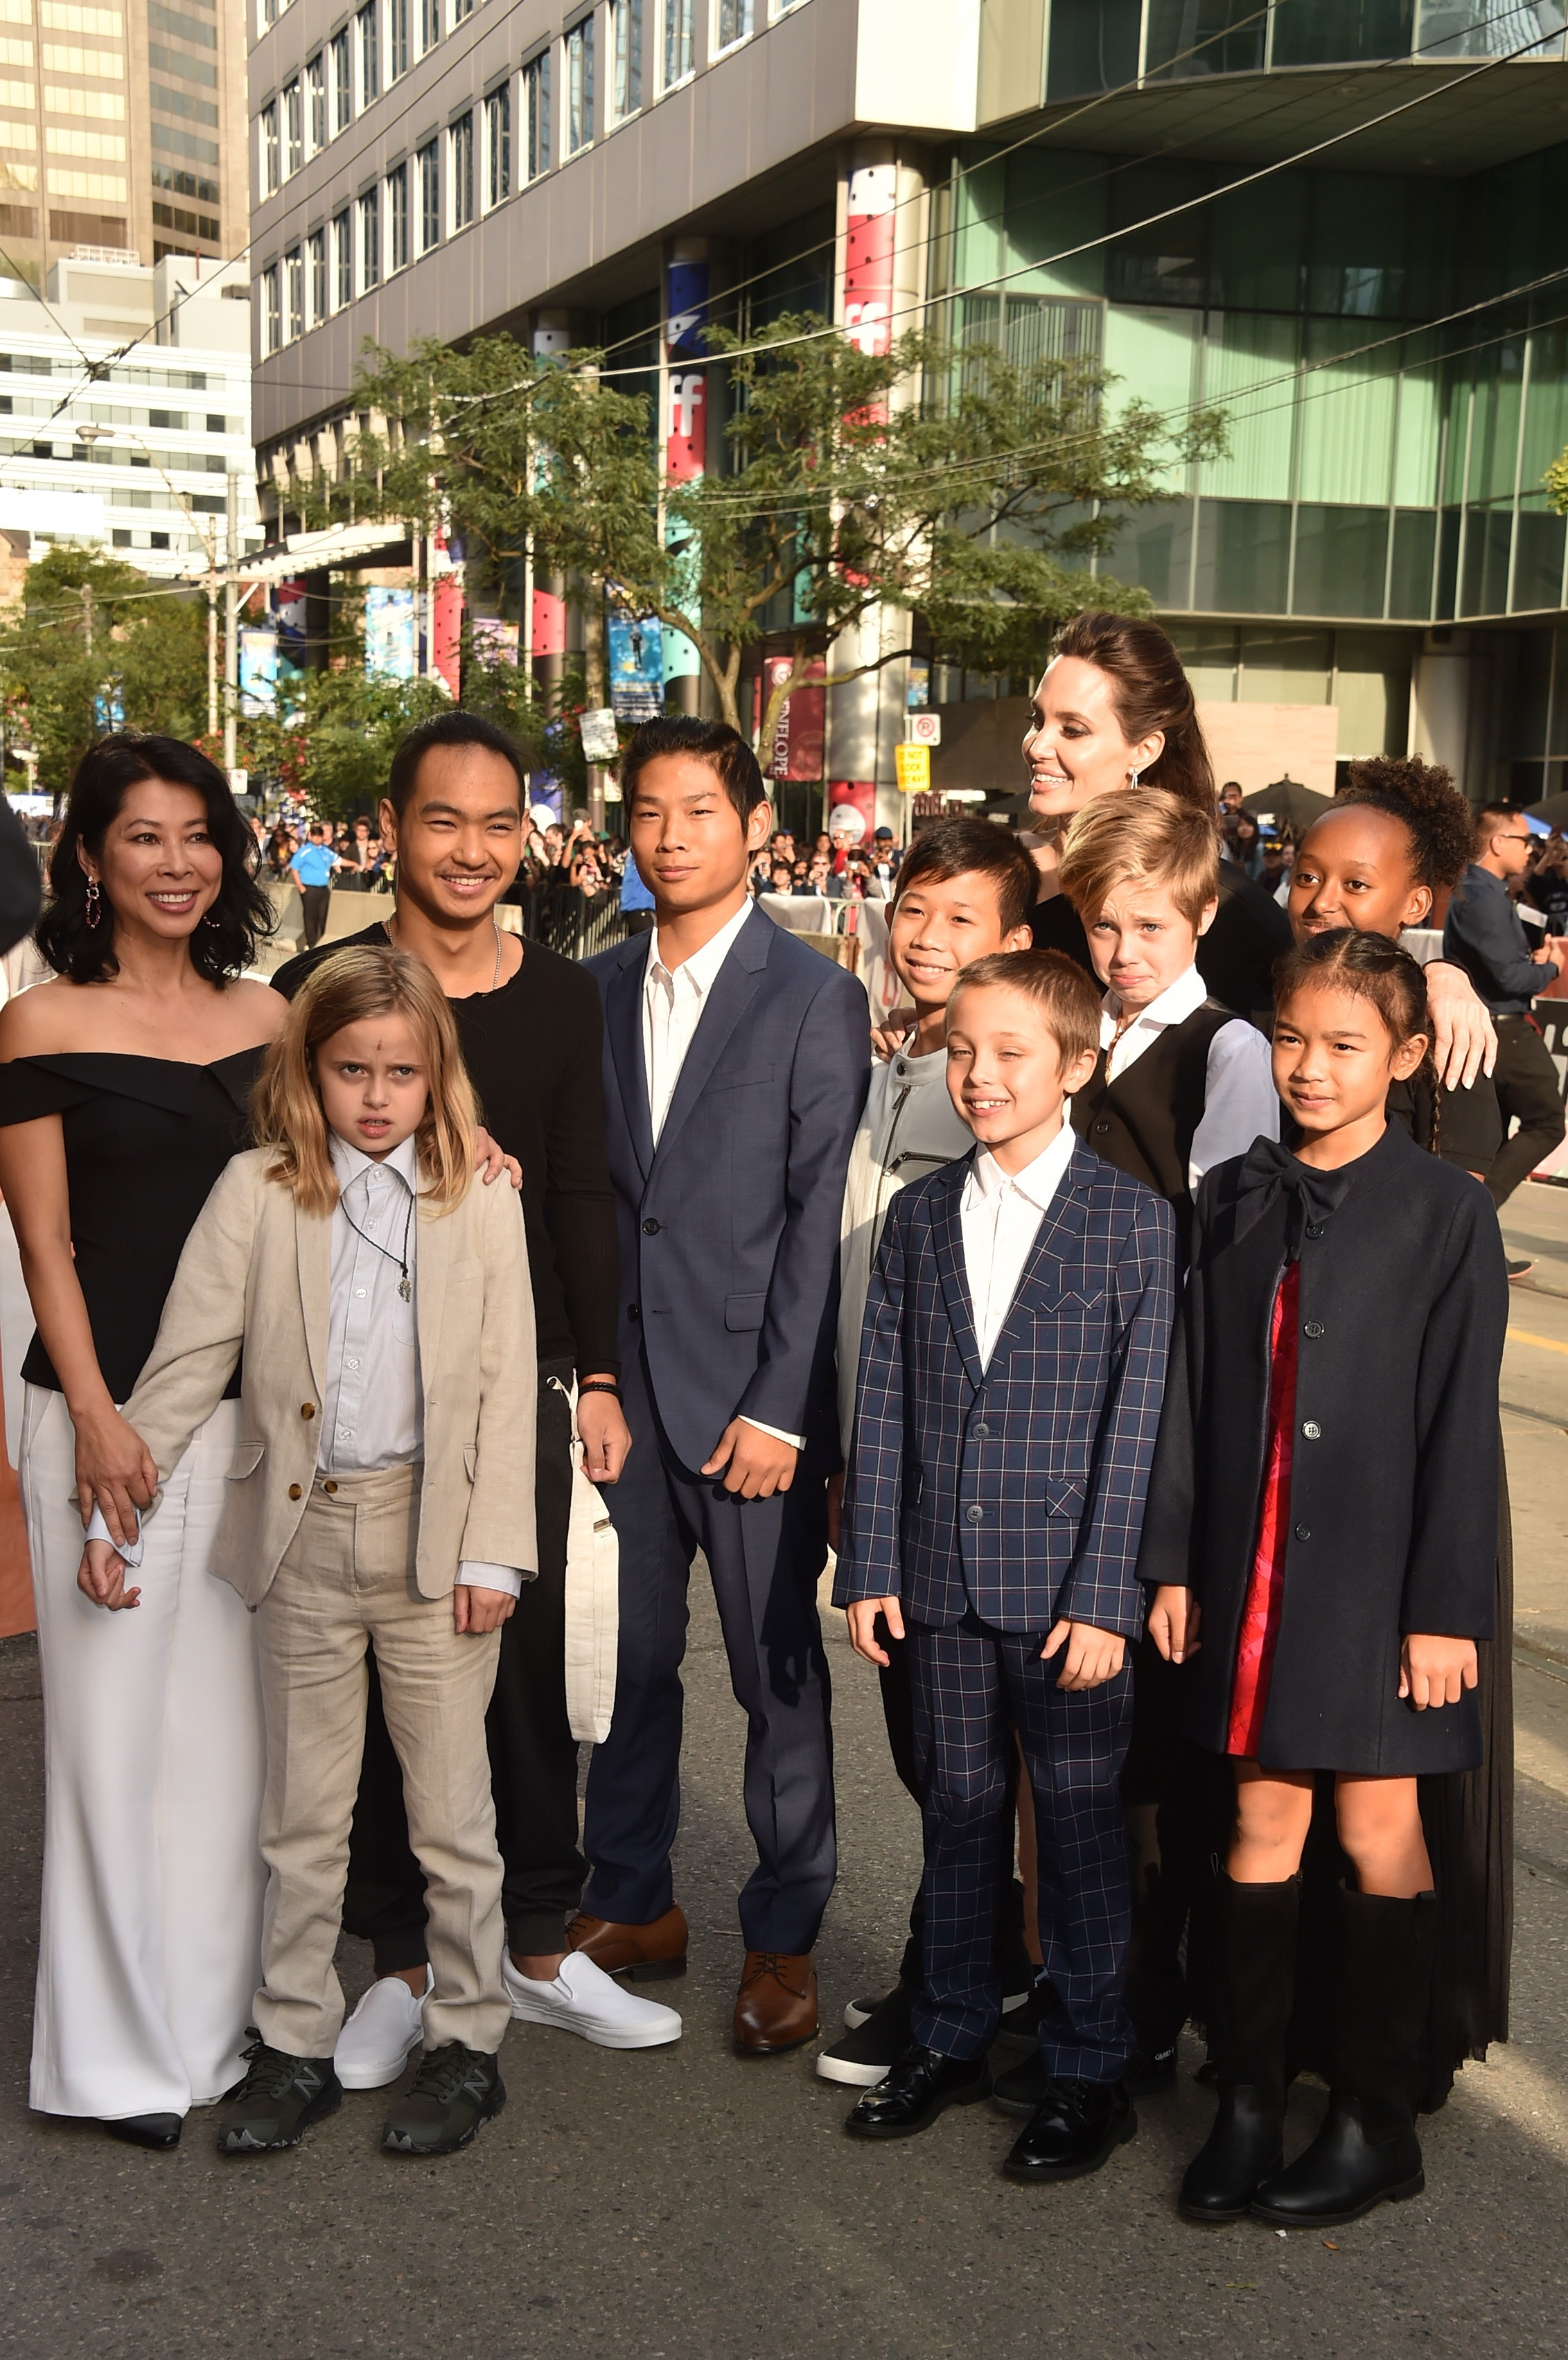 """TORONTO, ON - SEPTEMBER 11:  (L-R) Loung Ung, Vivienne Jolie-Pitt, Maddox Jolie-Pitt, Pax Jolie-Pitt, Kimhak Mun, Knox Jolie-Pitt, Shiloh Jolie-Pitt, Angelina Jolie, Zahara Jolie-Pitt and Sareum Srey Moch attend the """"First They Killed My Father"""" premiere  (Foto: Getty Images)"""